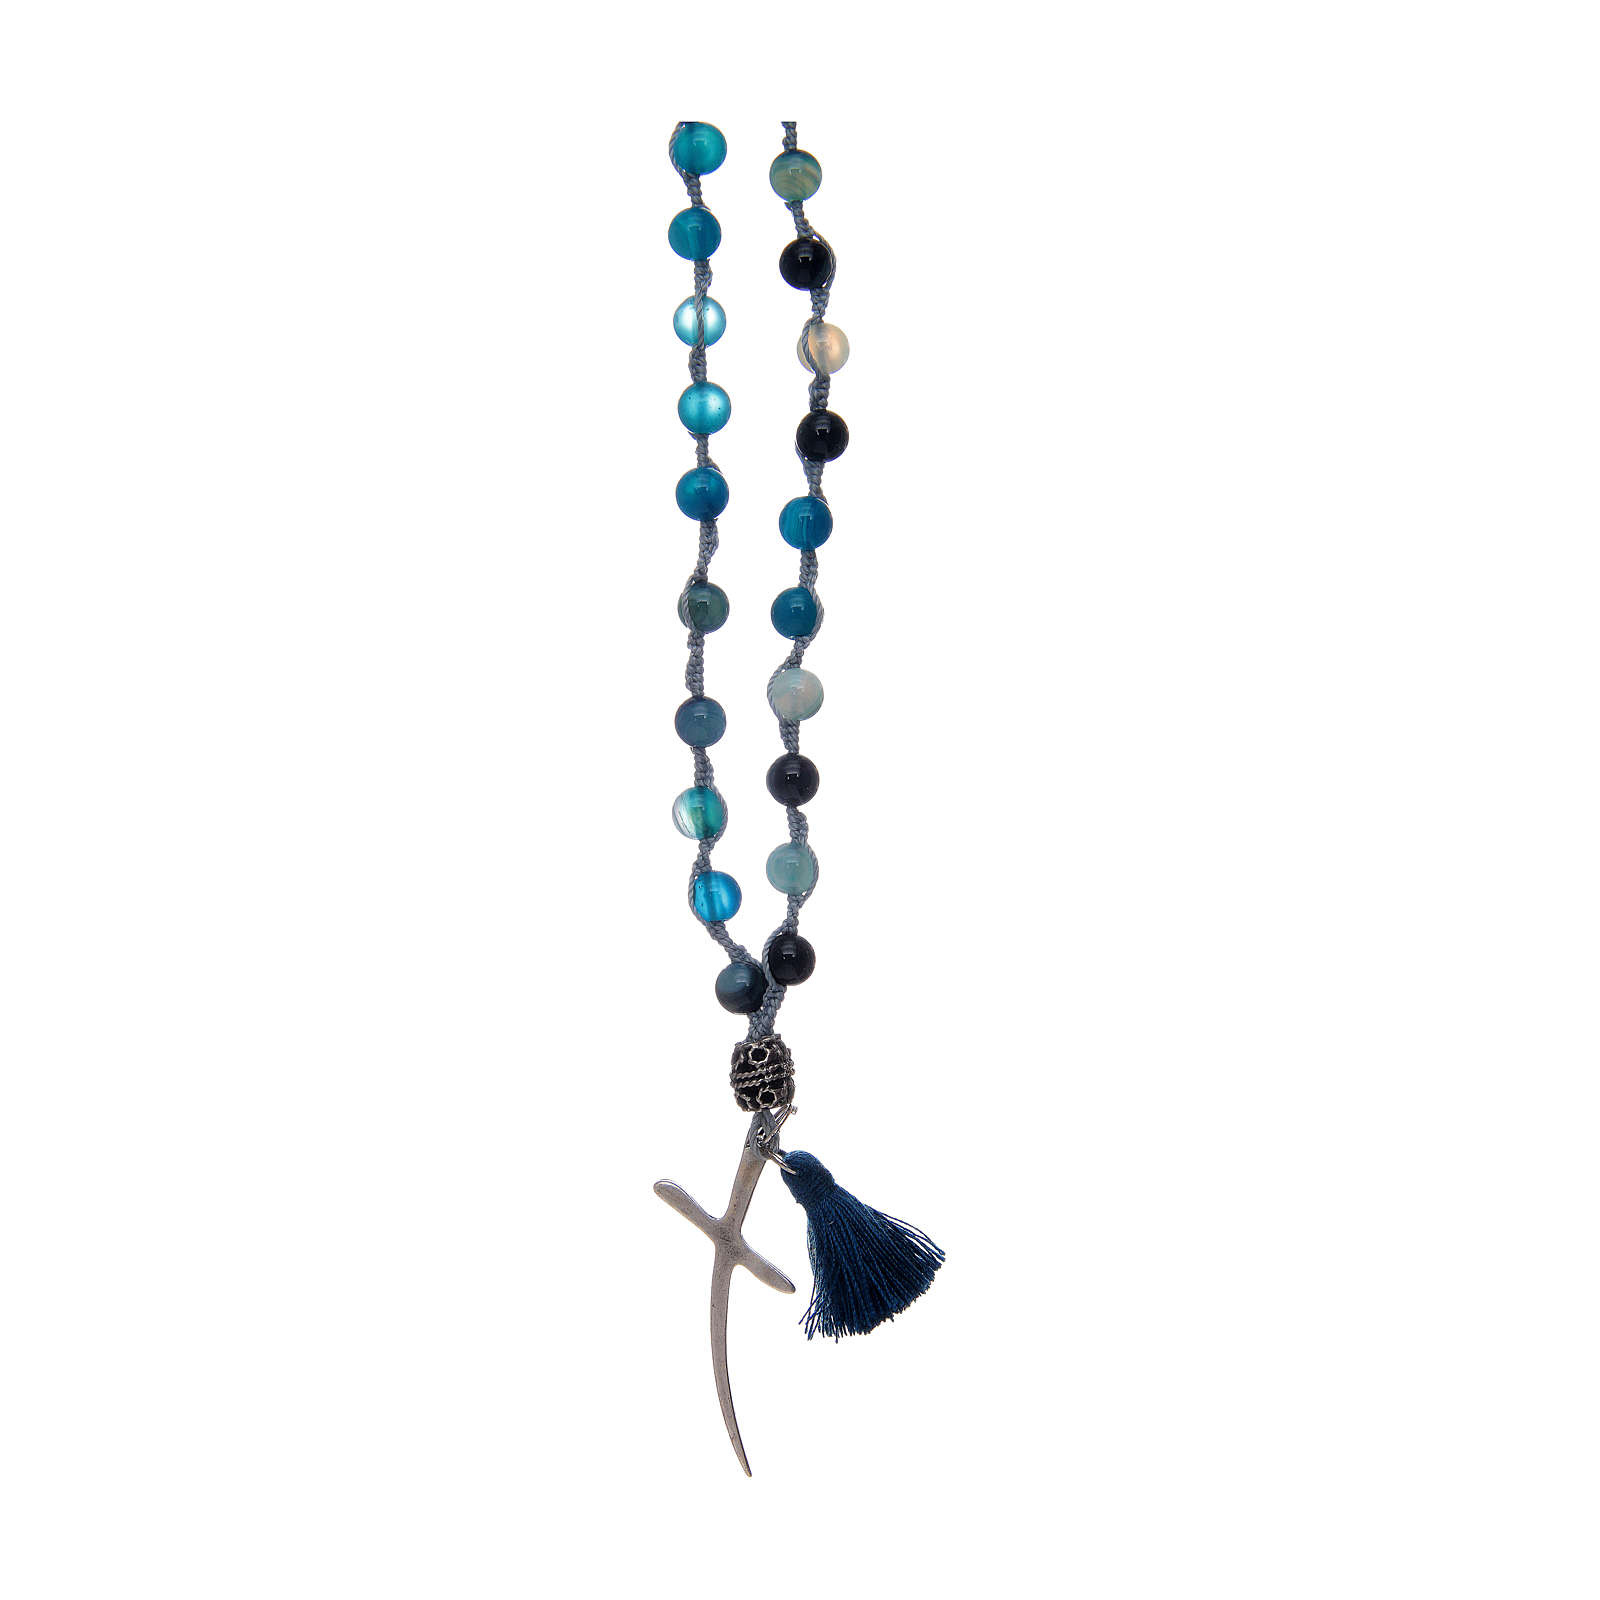 Rosary necklace with agate stones and cross 4